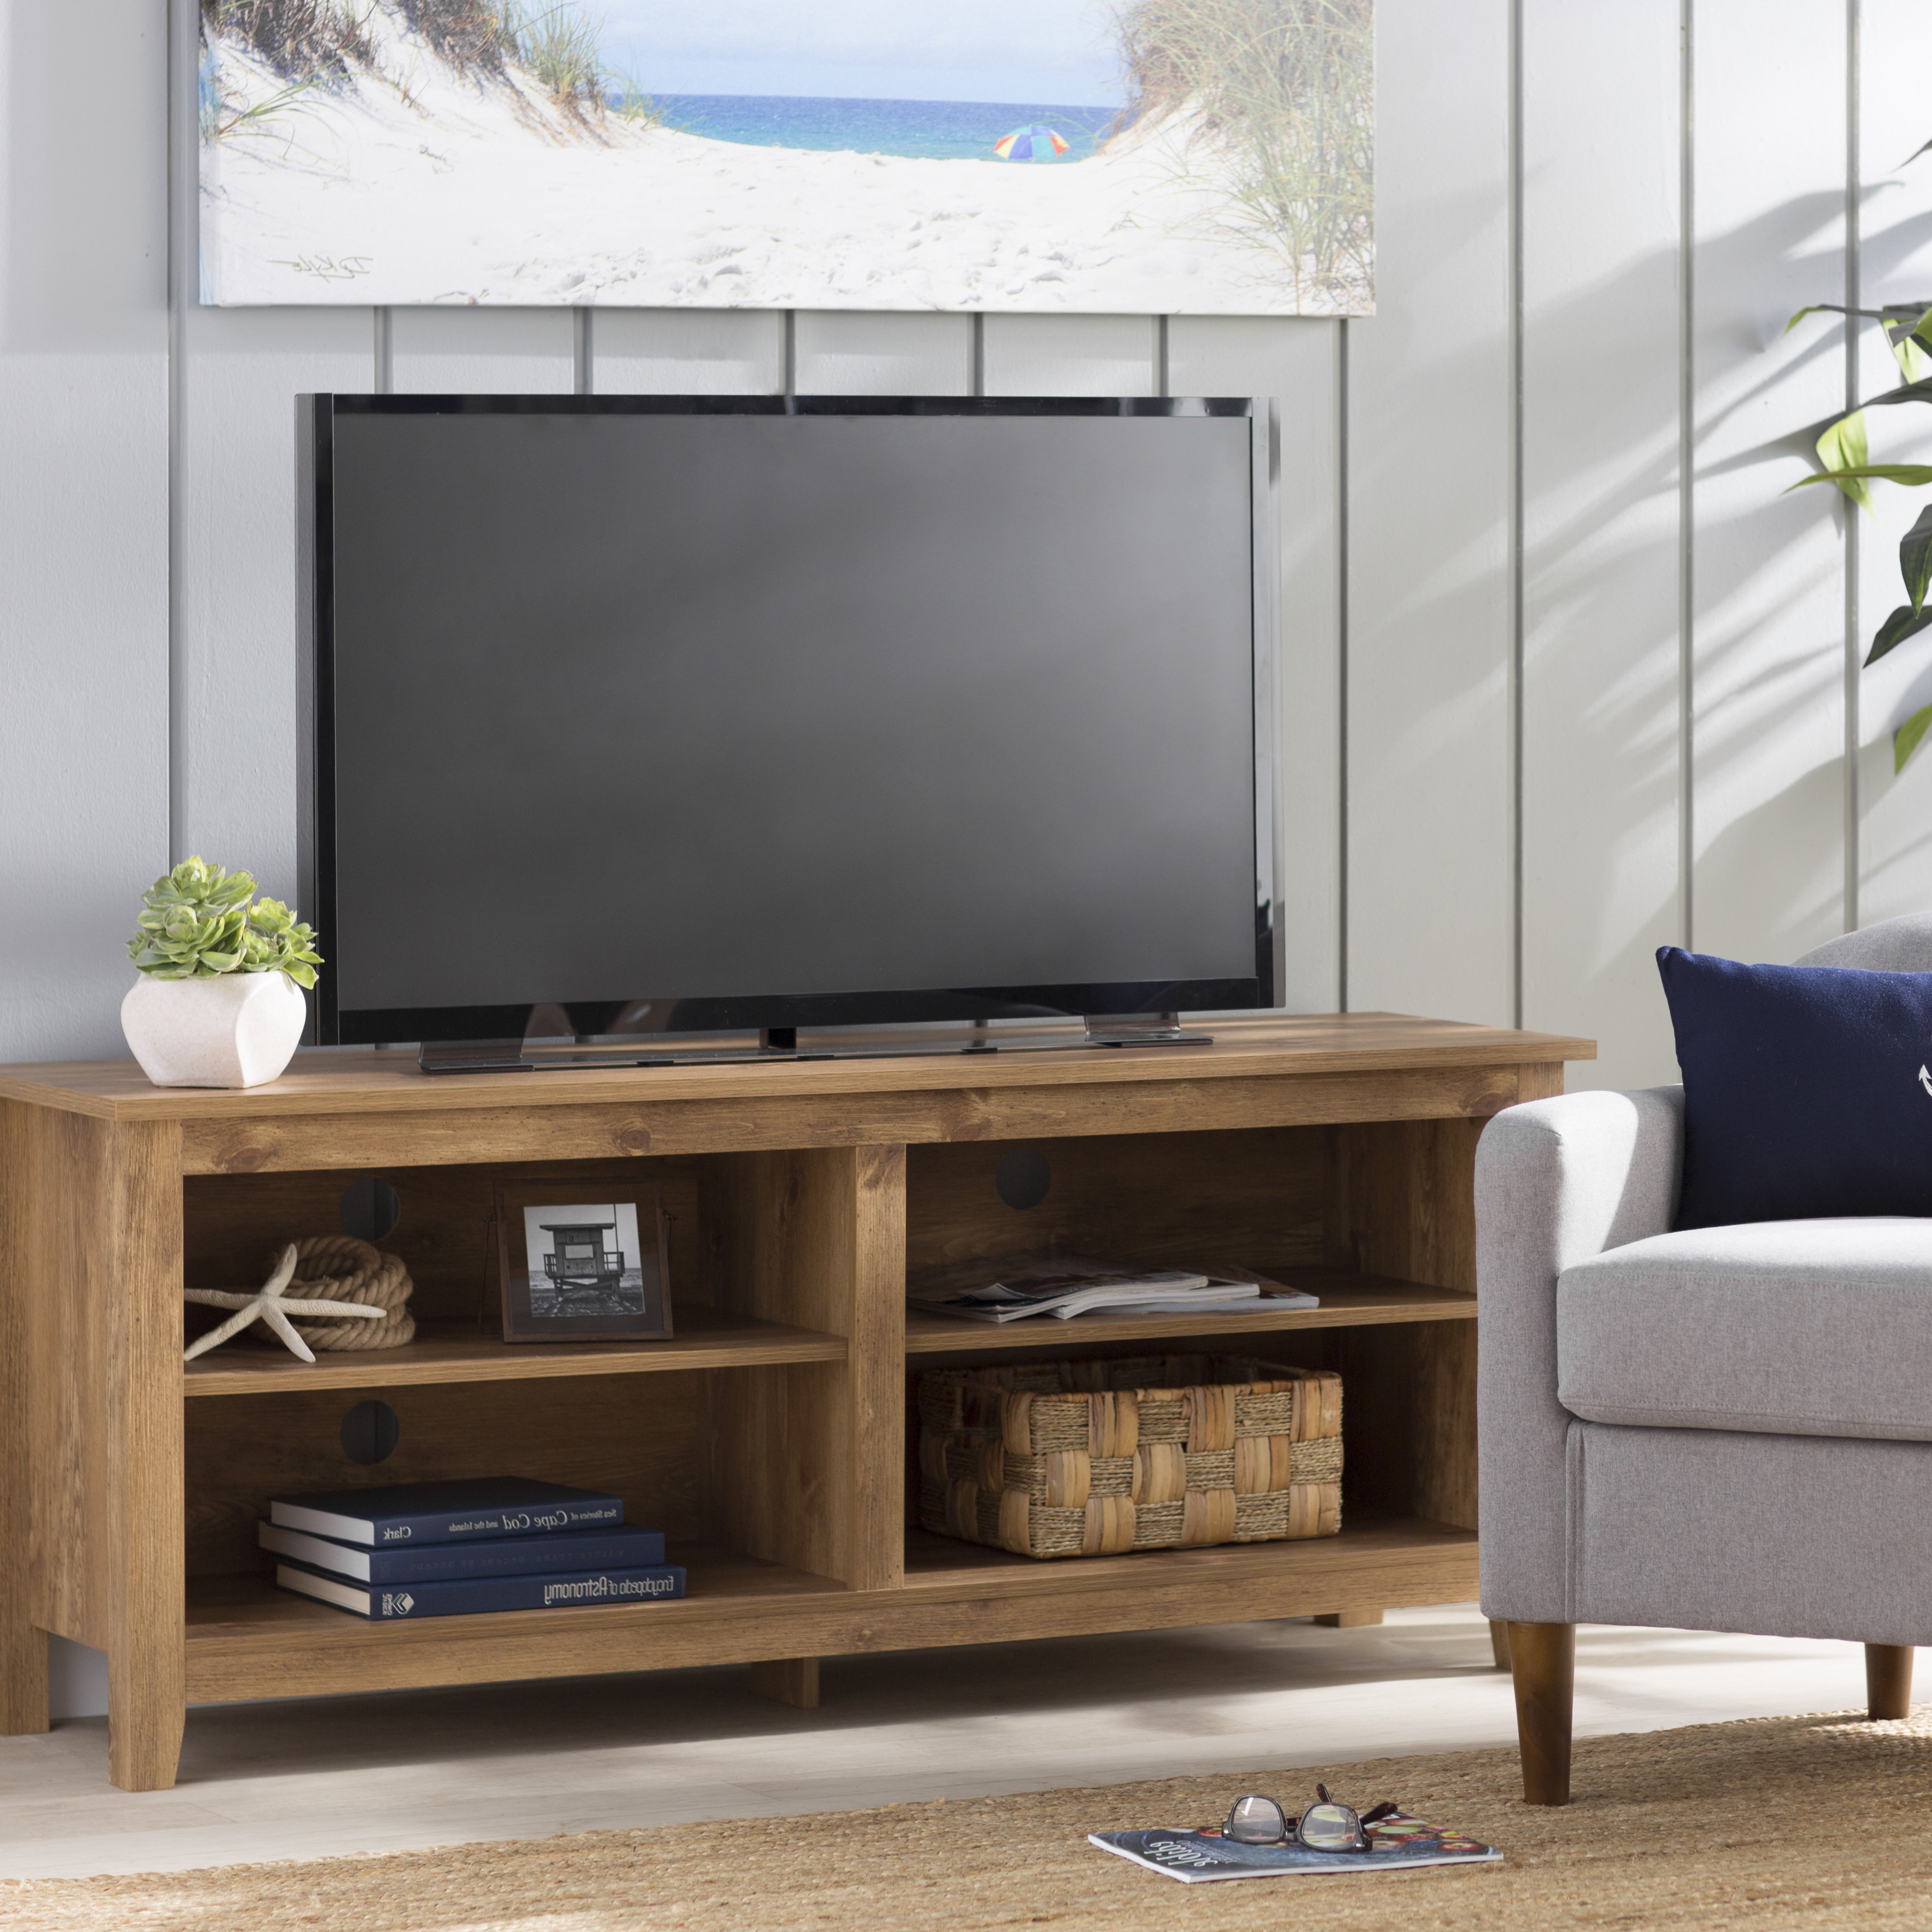 Popular Tv Stands & Entertainment Centers You'll Love (View 16 of 20)